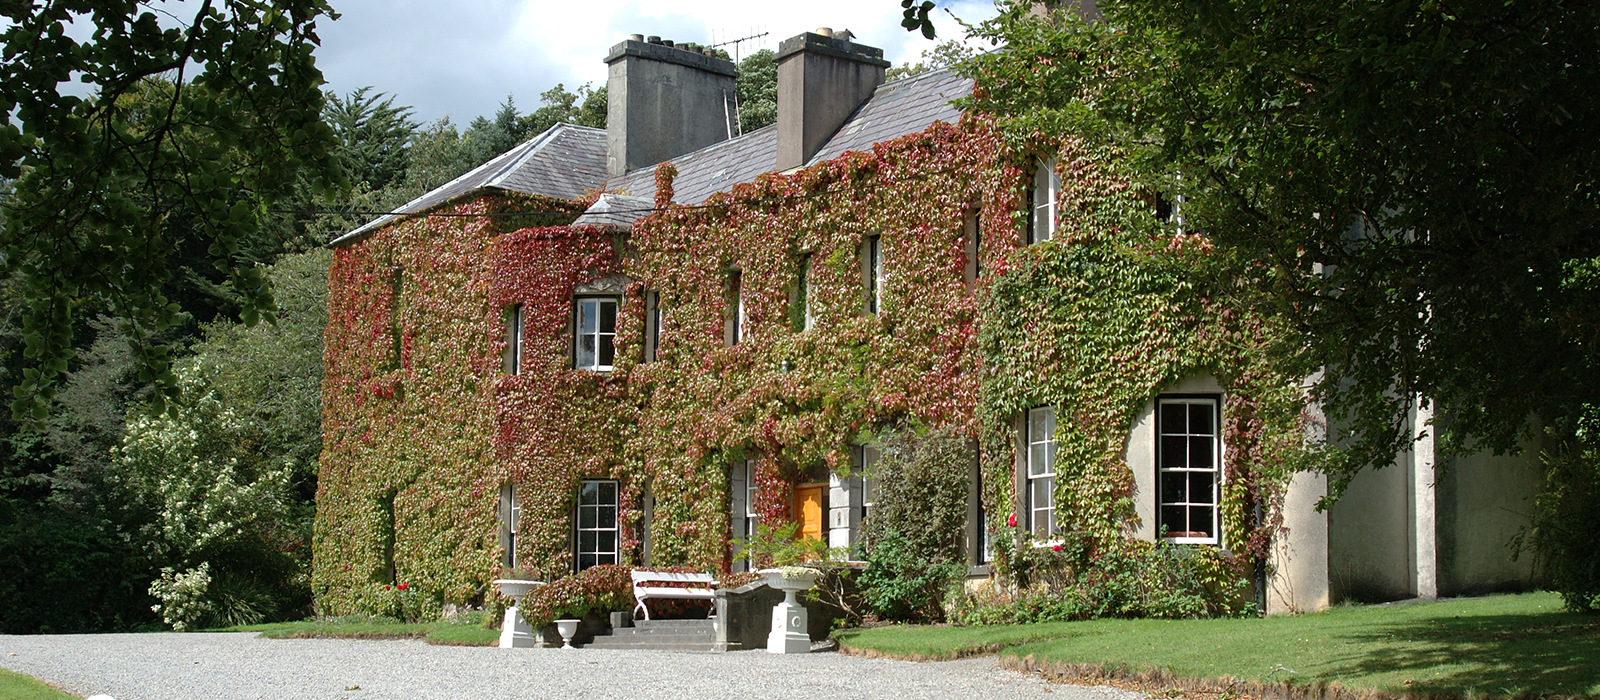 Newport house country manor house restaurant mayo ireland for Westport ireland real estate